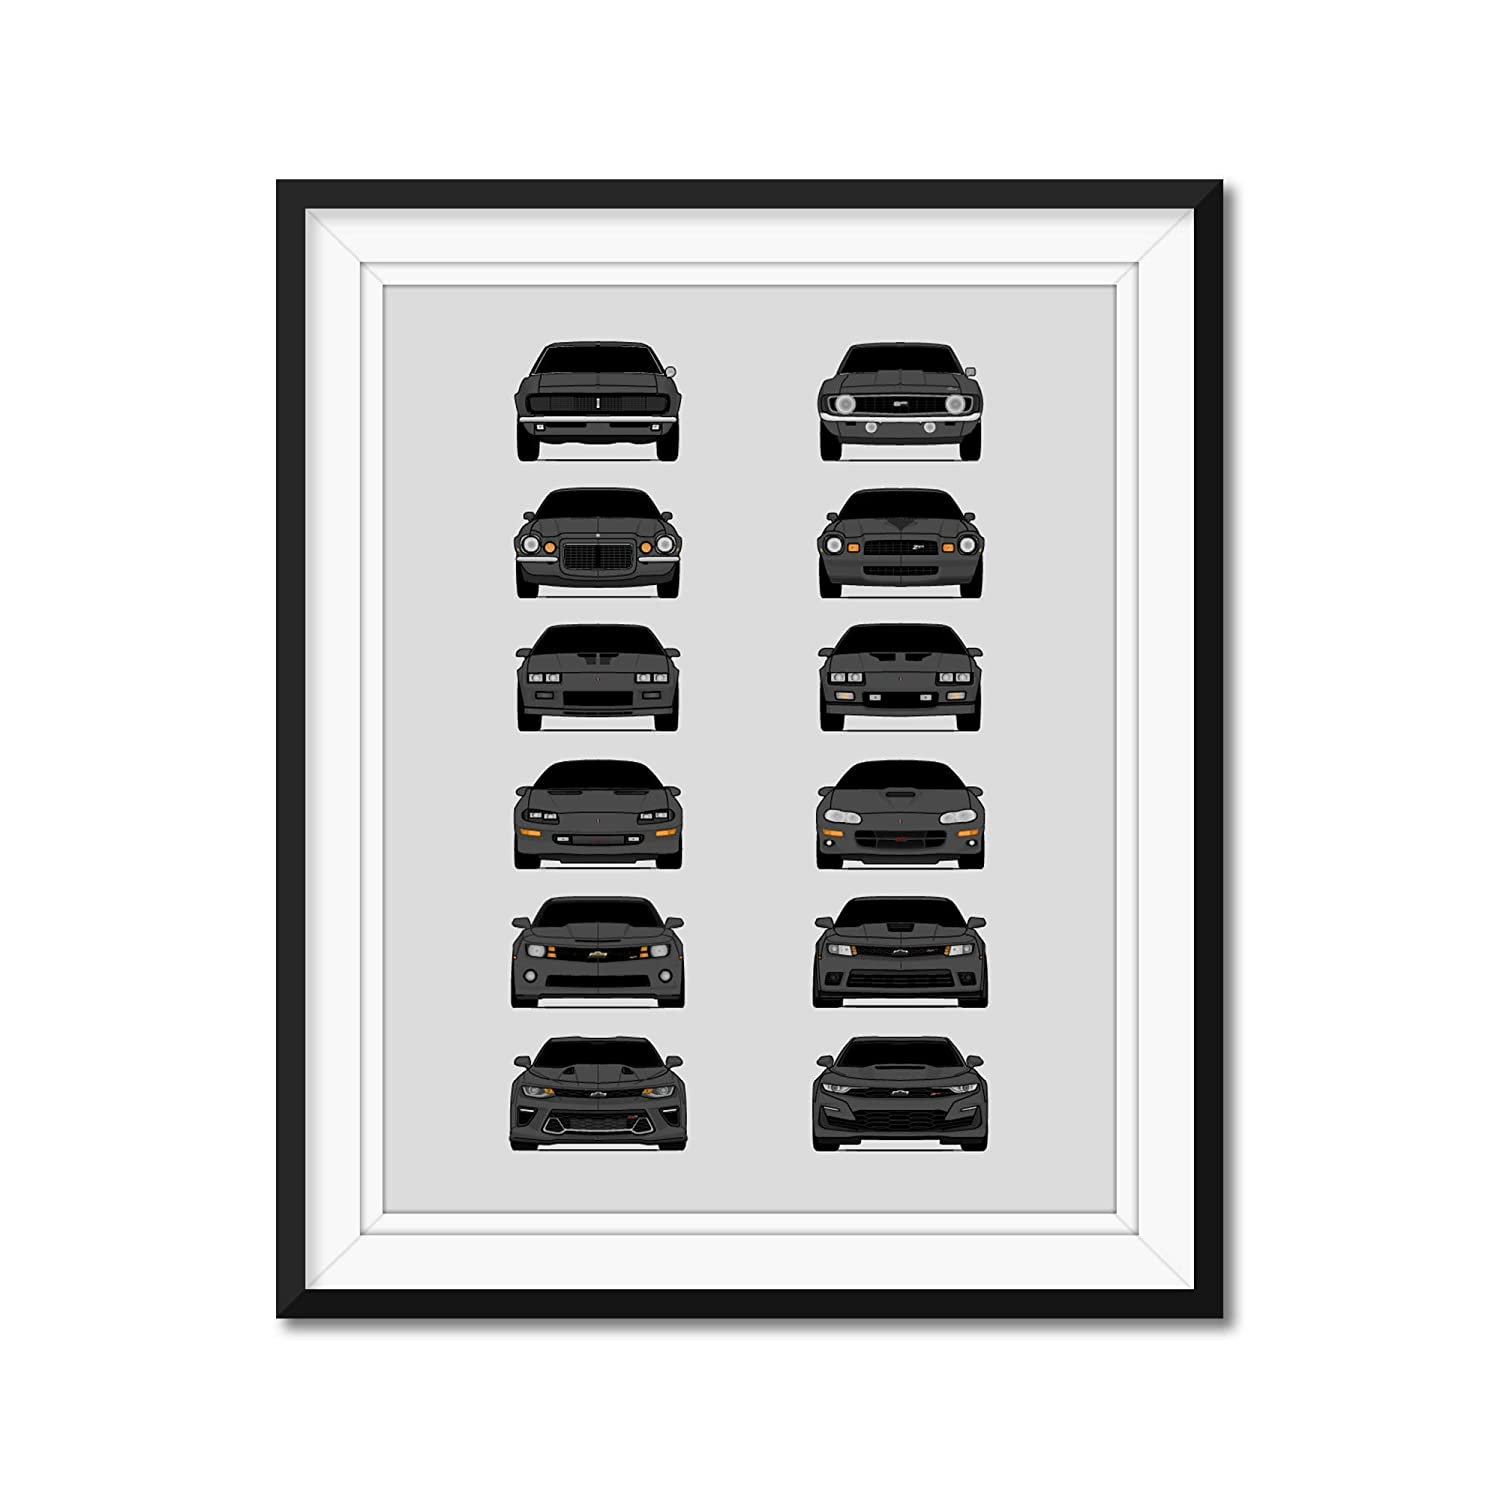 Chevy Camaro Generations San Antonio Mall excellence 1967-Present Poster Print Wa Inspired